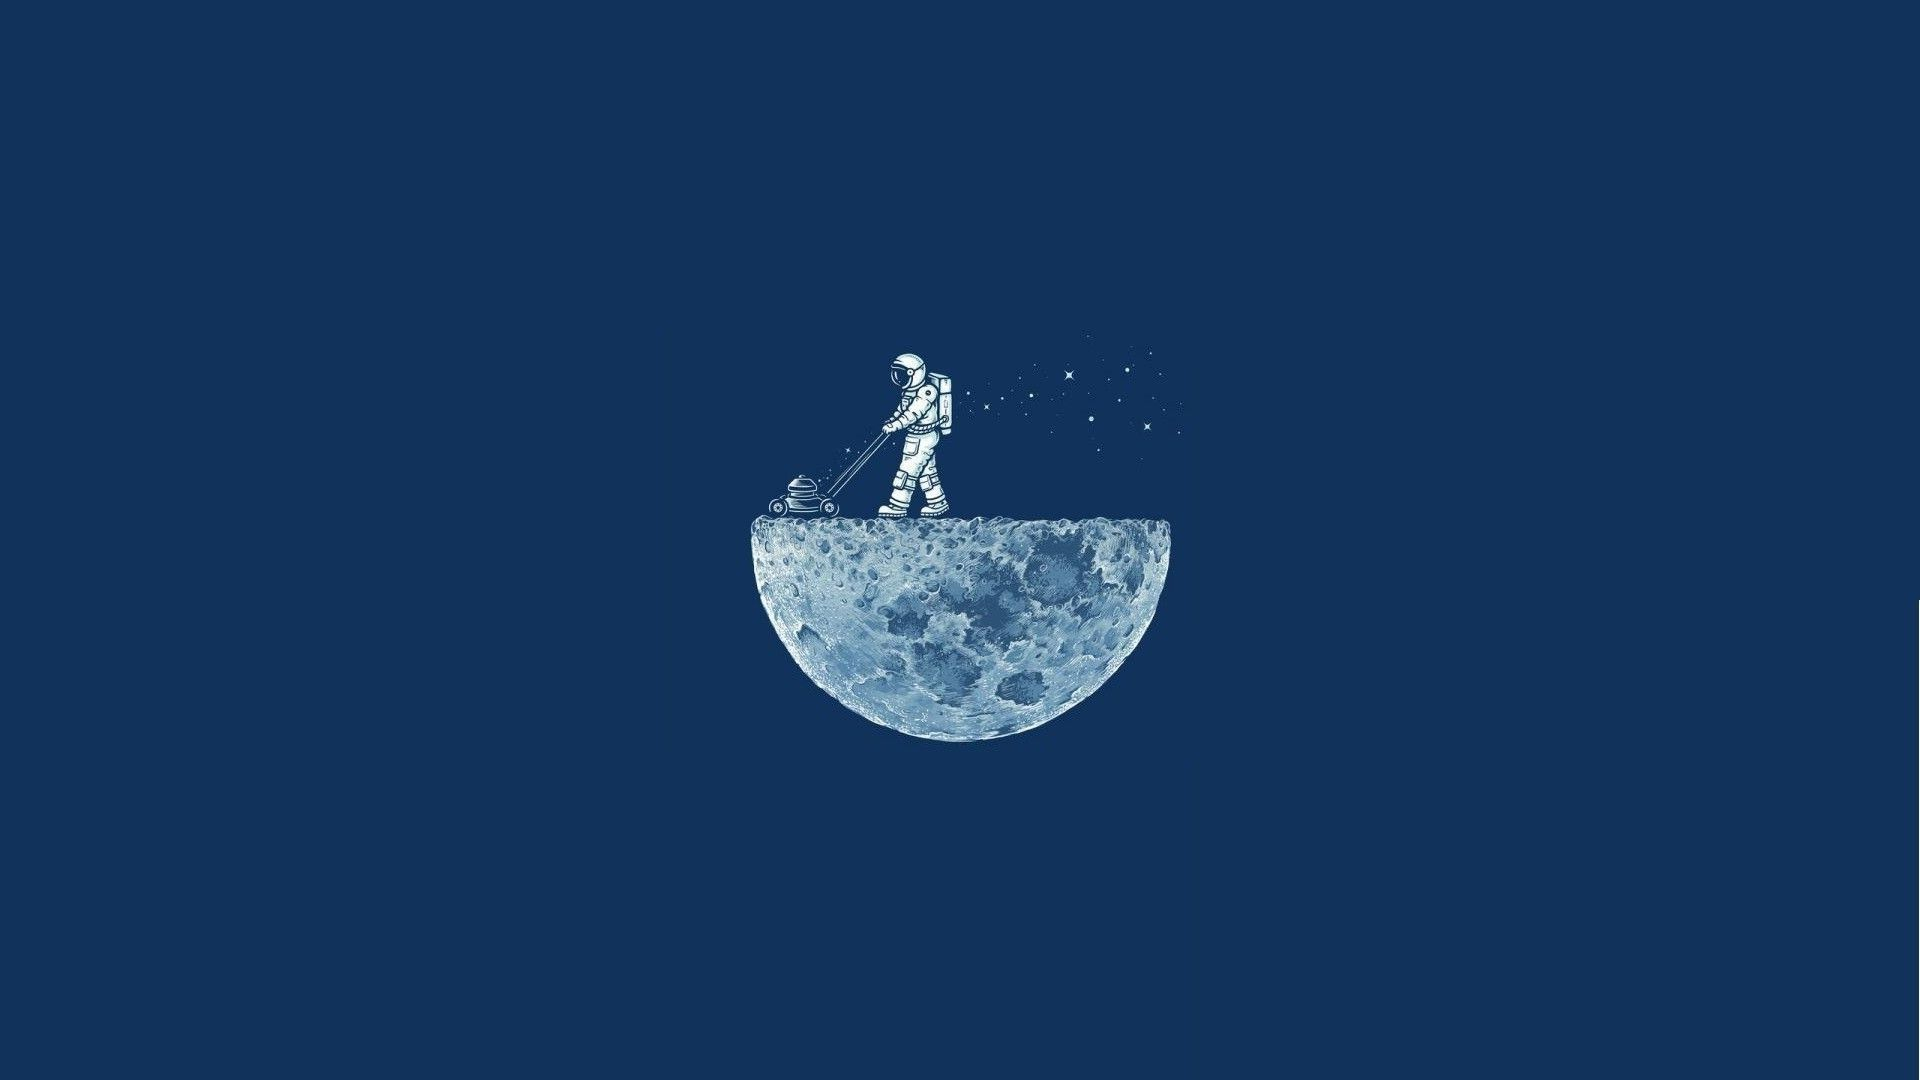 Download Hd Wallpapers Of 16687 Space Minimalism Blue Background Moon Astronaut Astronauts Hum Astronaut Wallpaper Minimalist Wallpaper Minimal Wallpaper